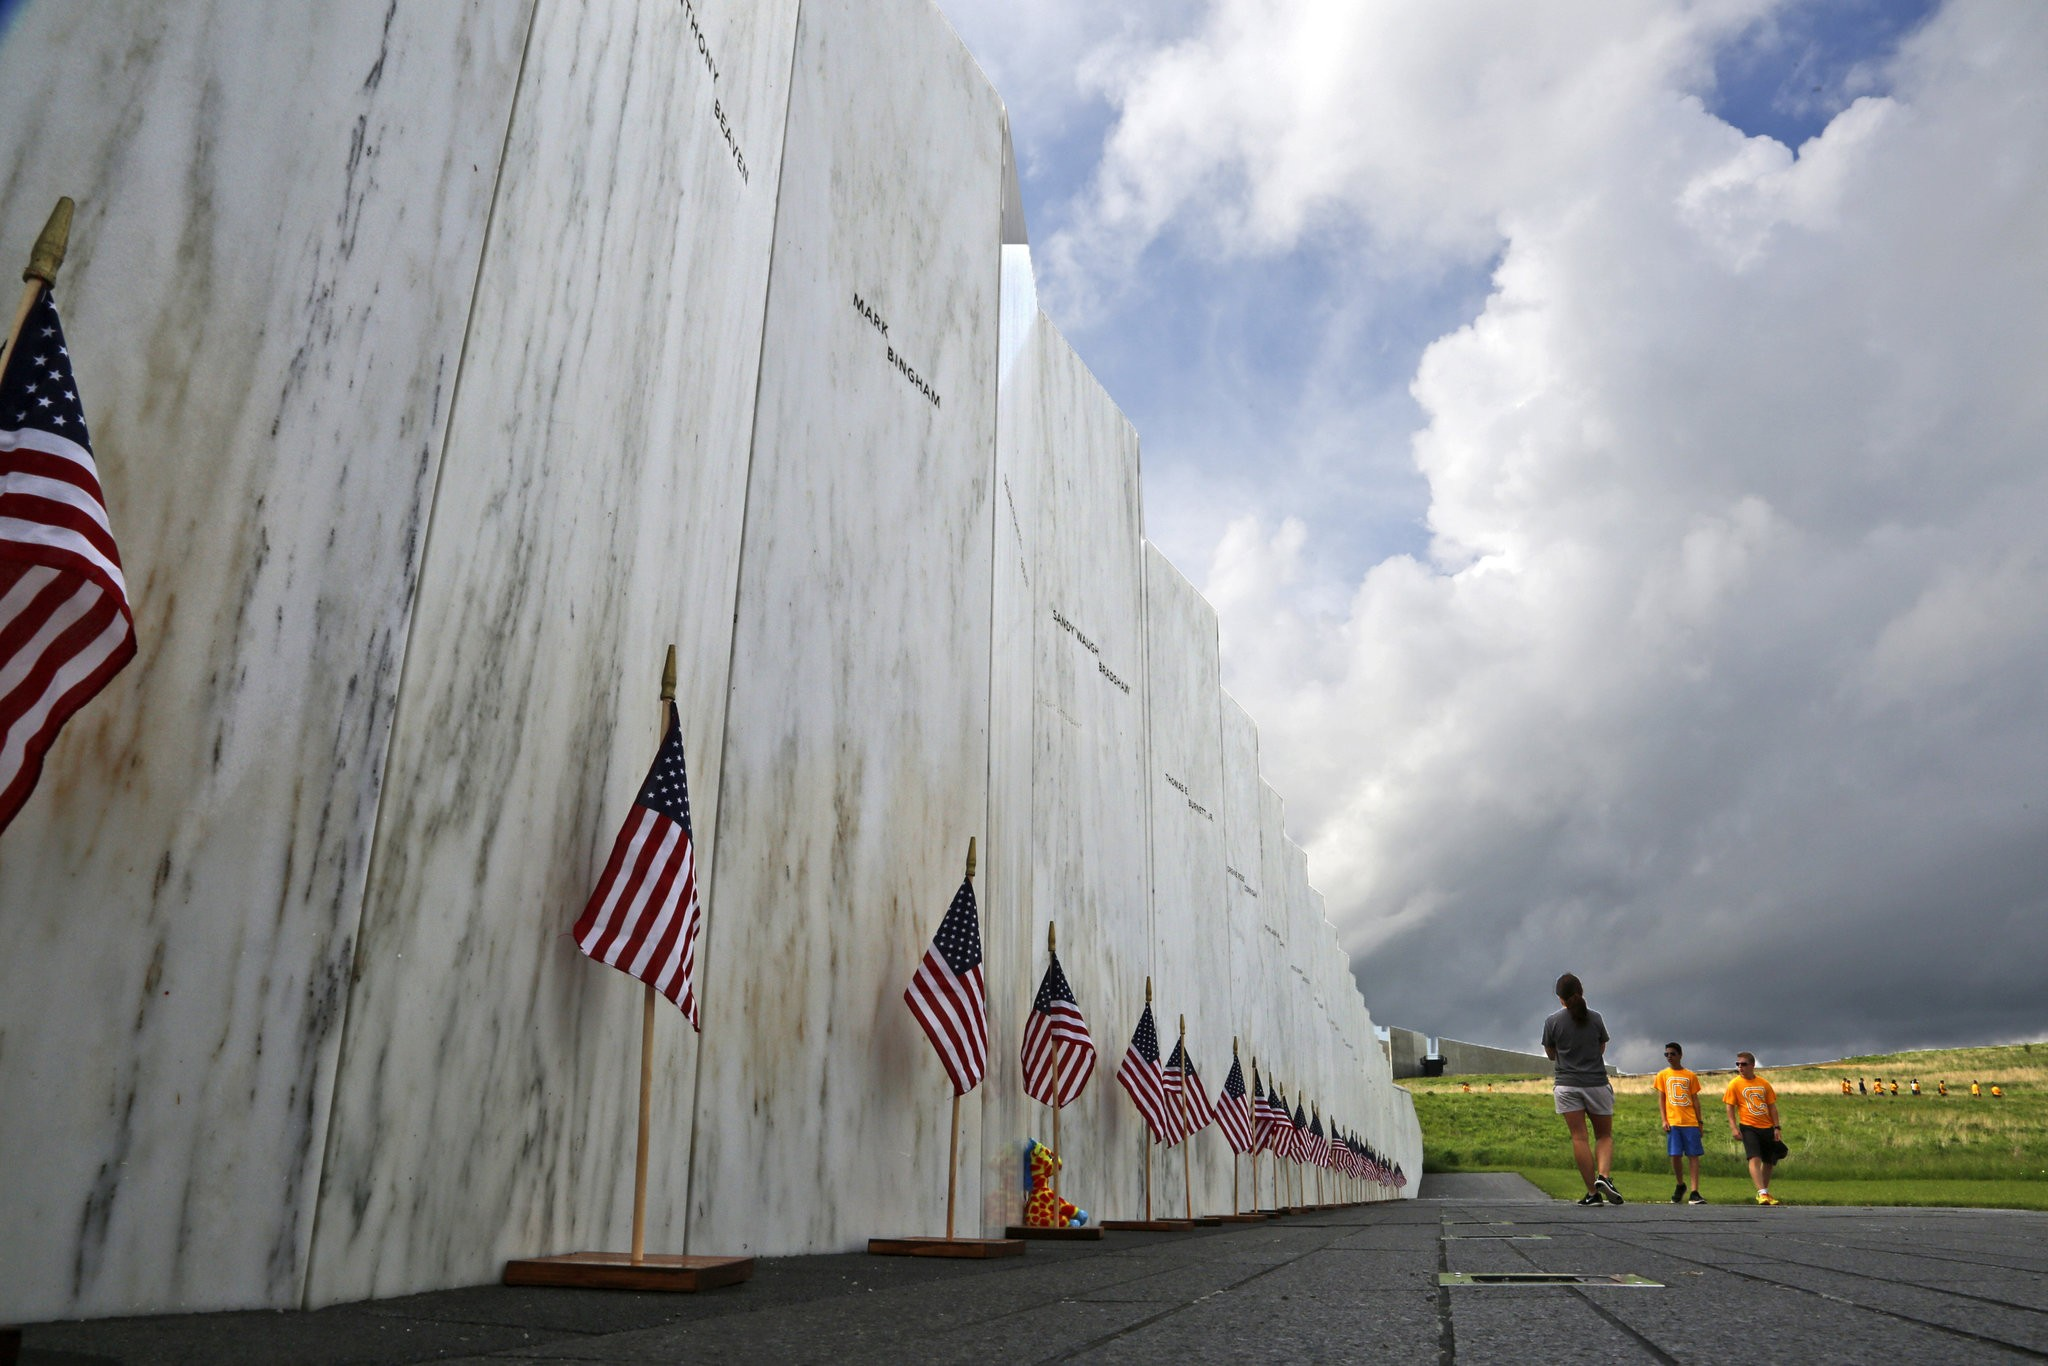 Remaining wreckage of Flight 93 quietly buried at memorial - pennlive.com